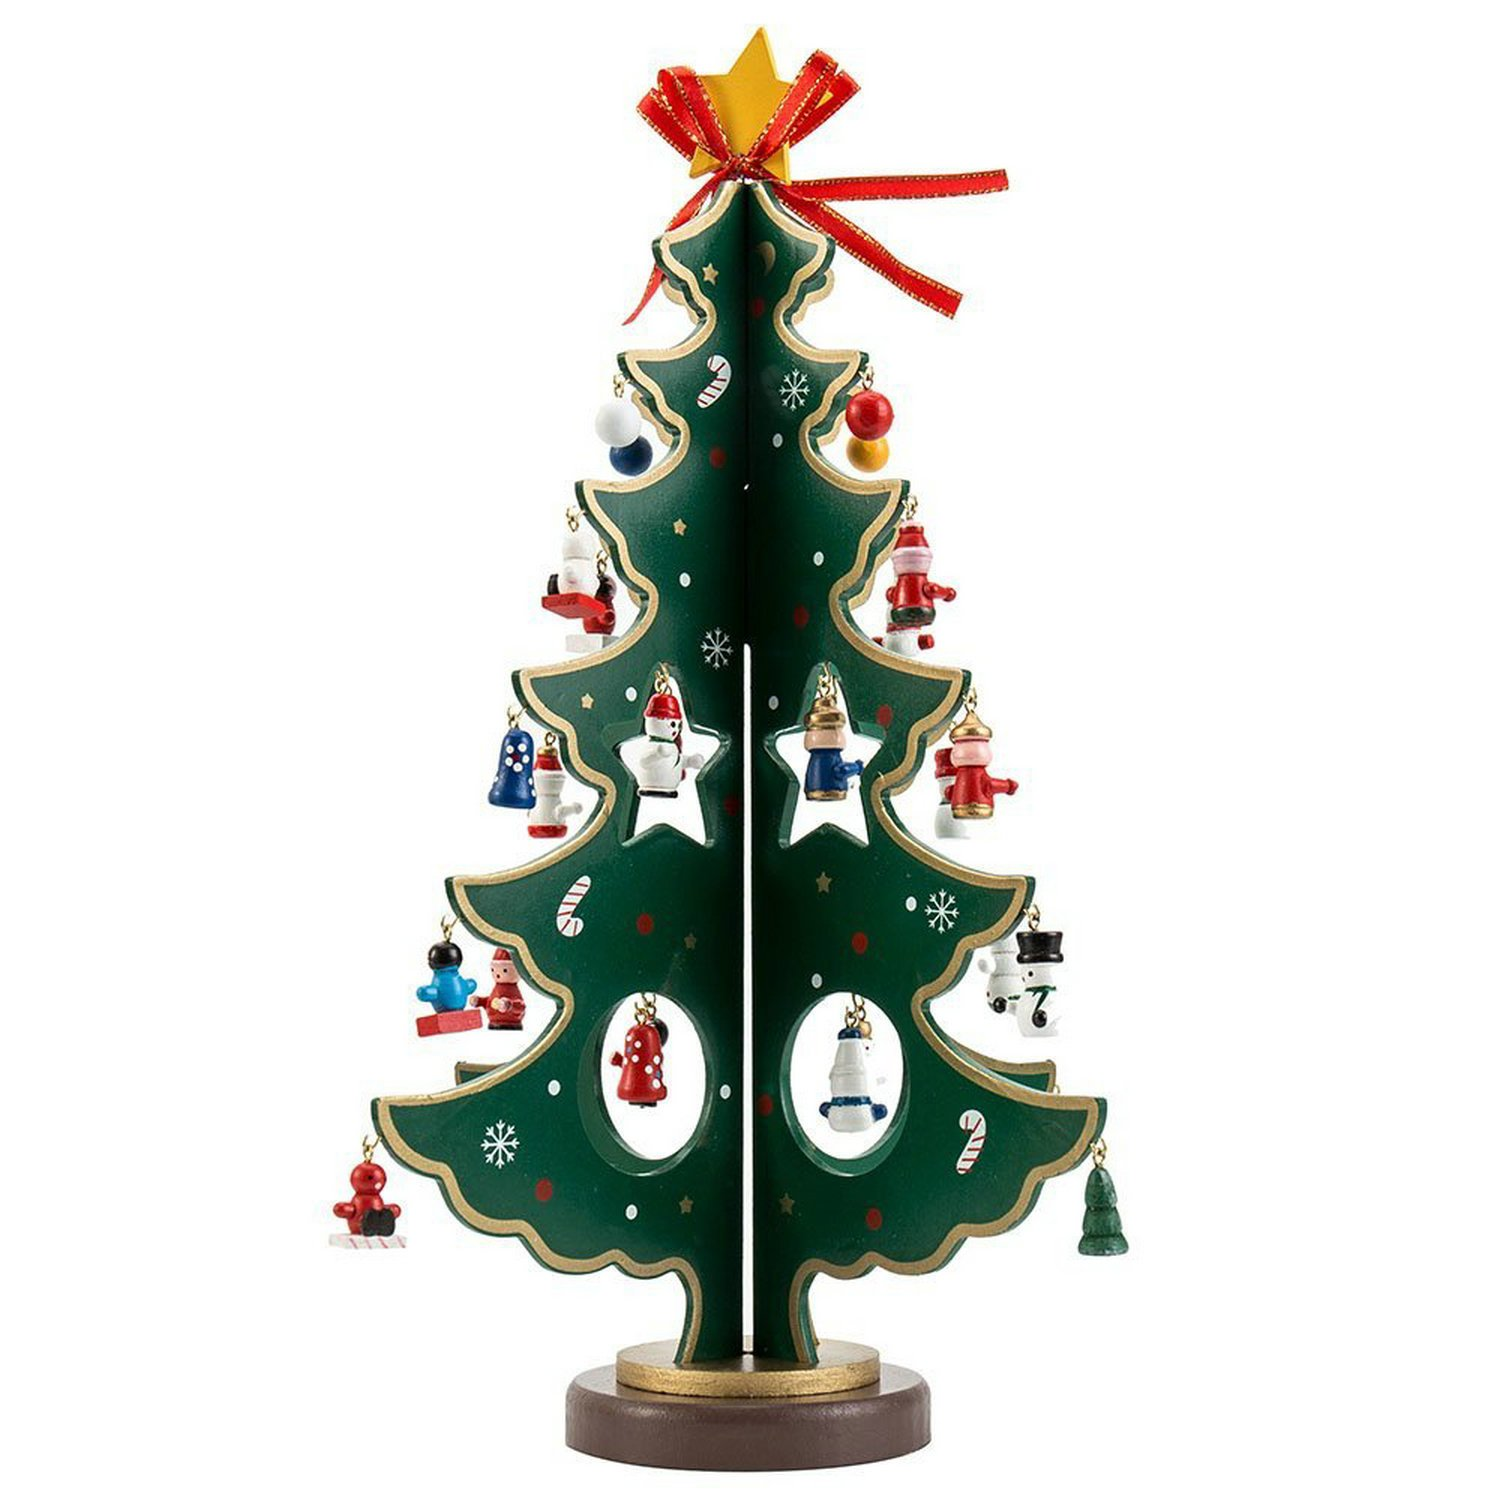 Cozzy Wood Tabletop Christmas Tree with Miniature Wooden Ornaments DIY Xmas Desk Decoration Holiday Touch Gift for Families, Friends and Lovers (green)